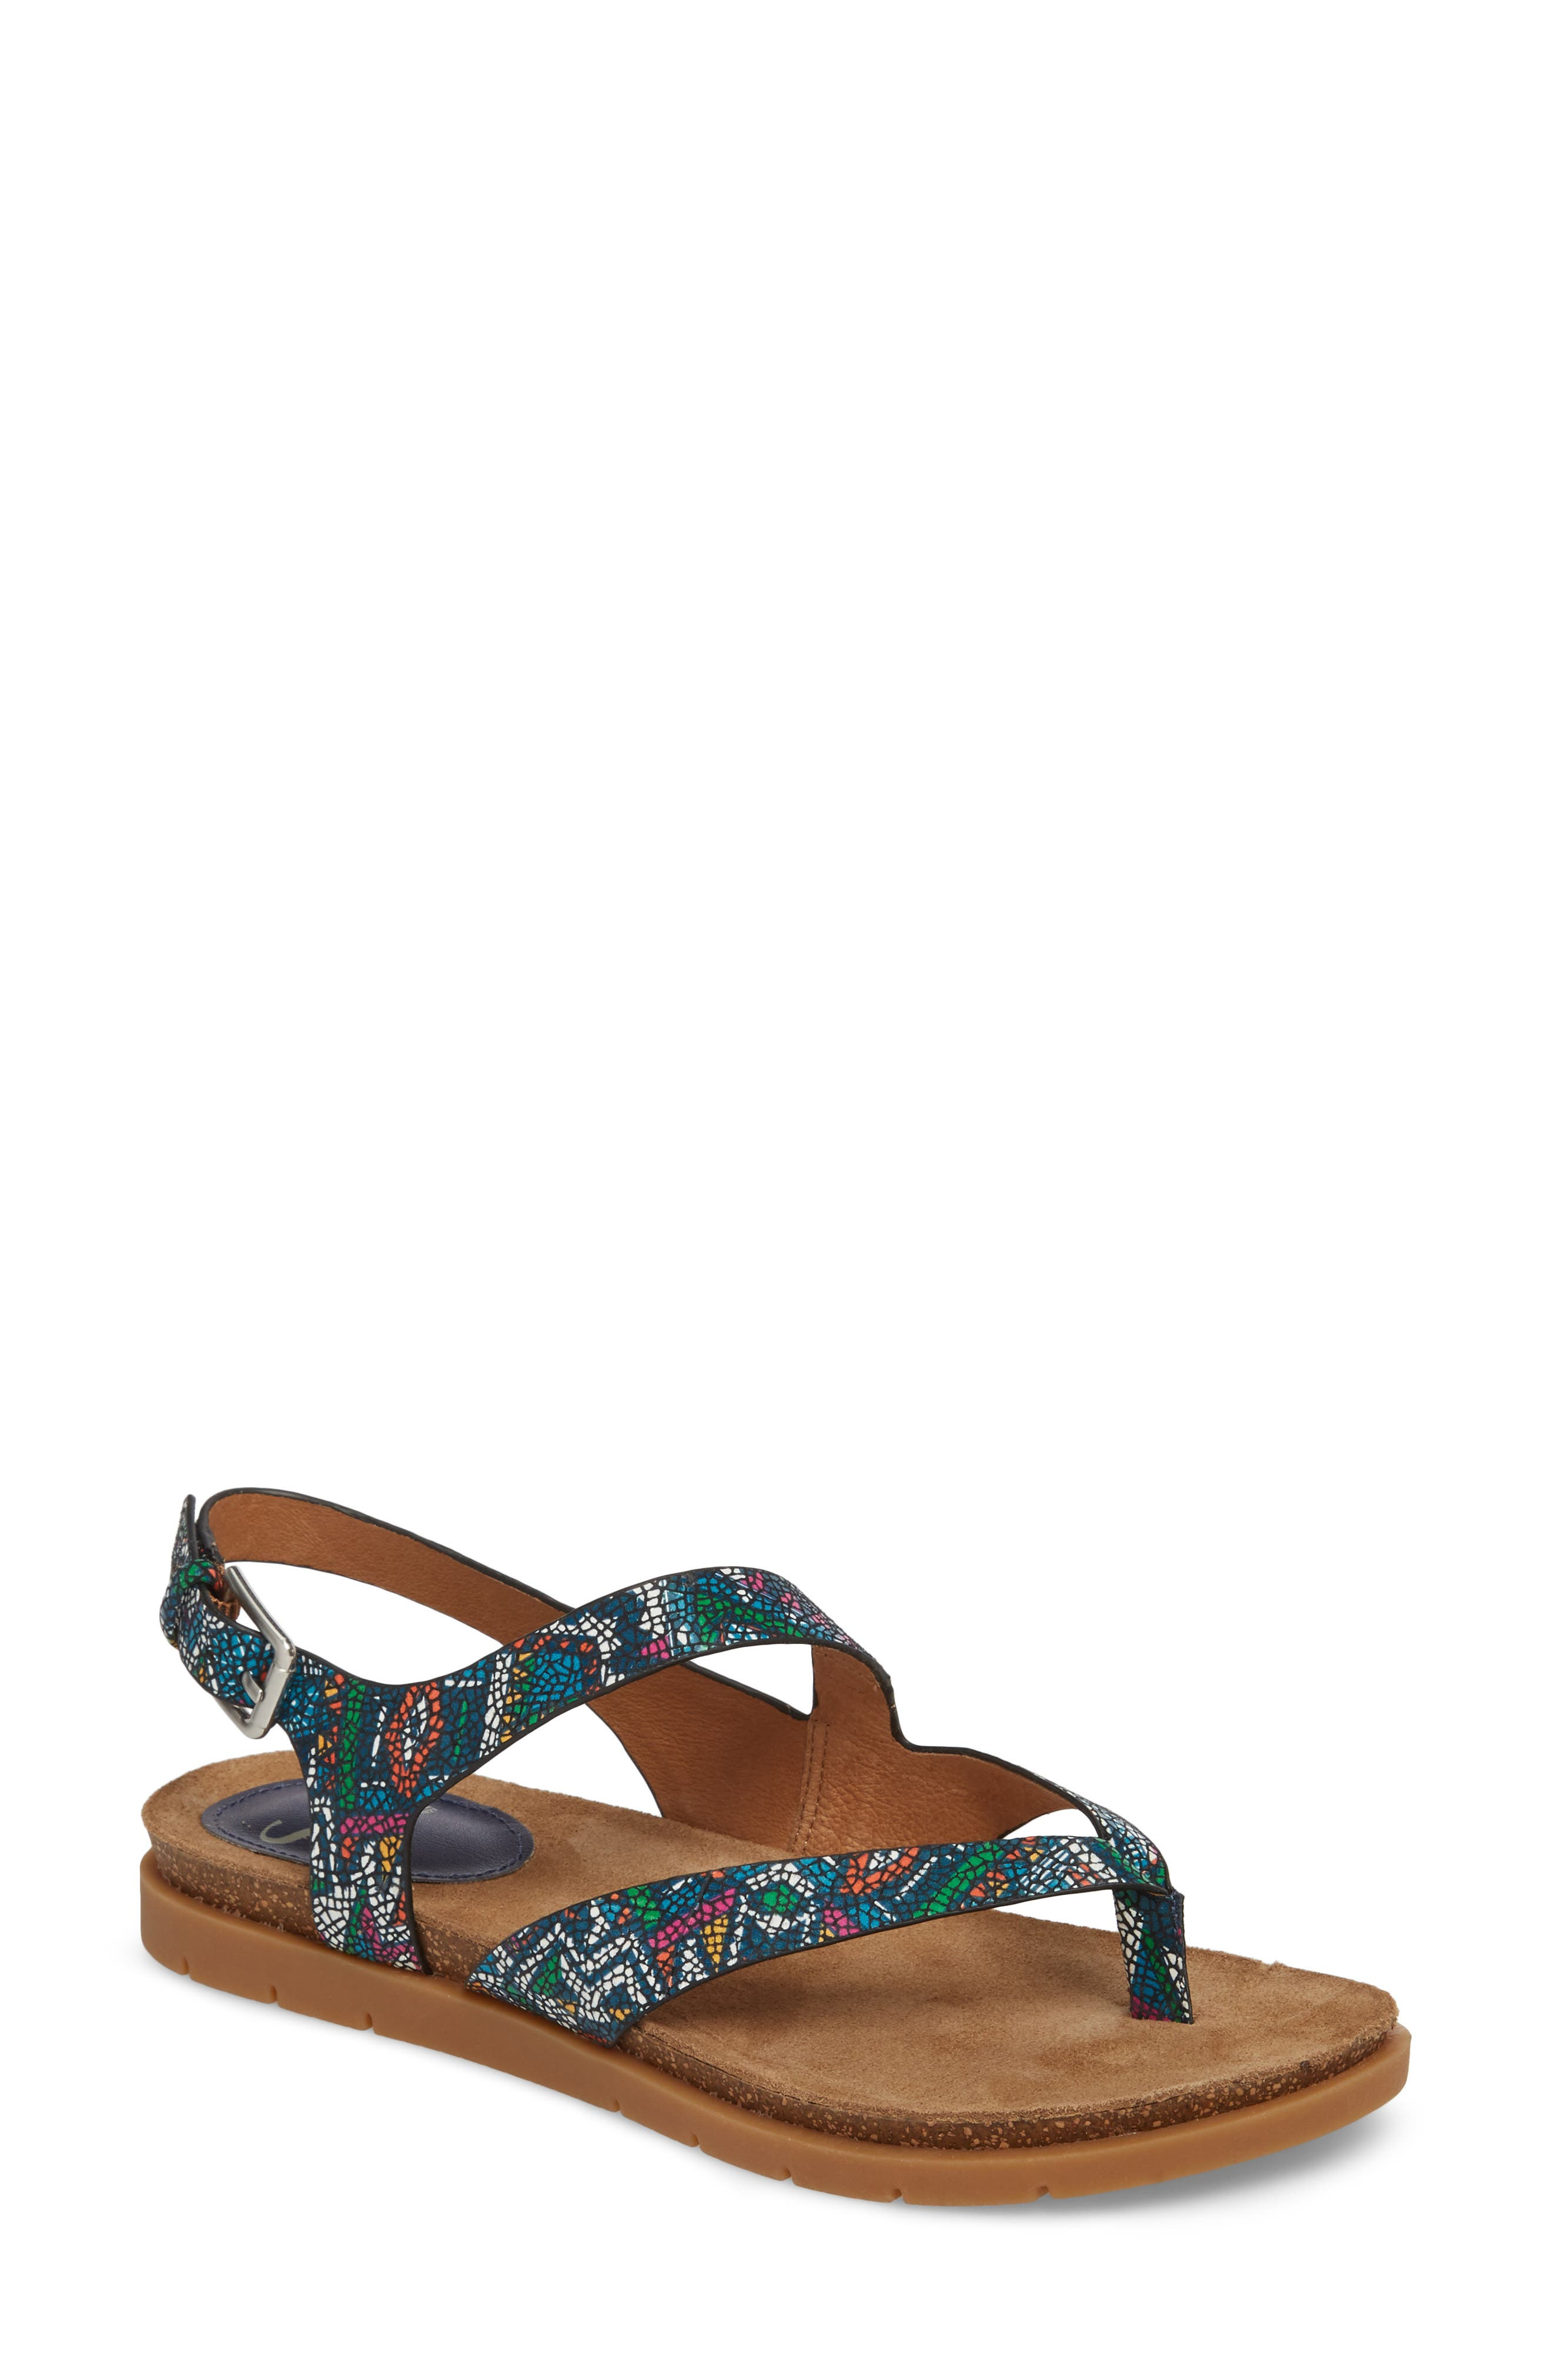 Rory Sandal,                         Main,                         color, Blue Multi Printed Leather